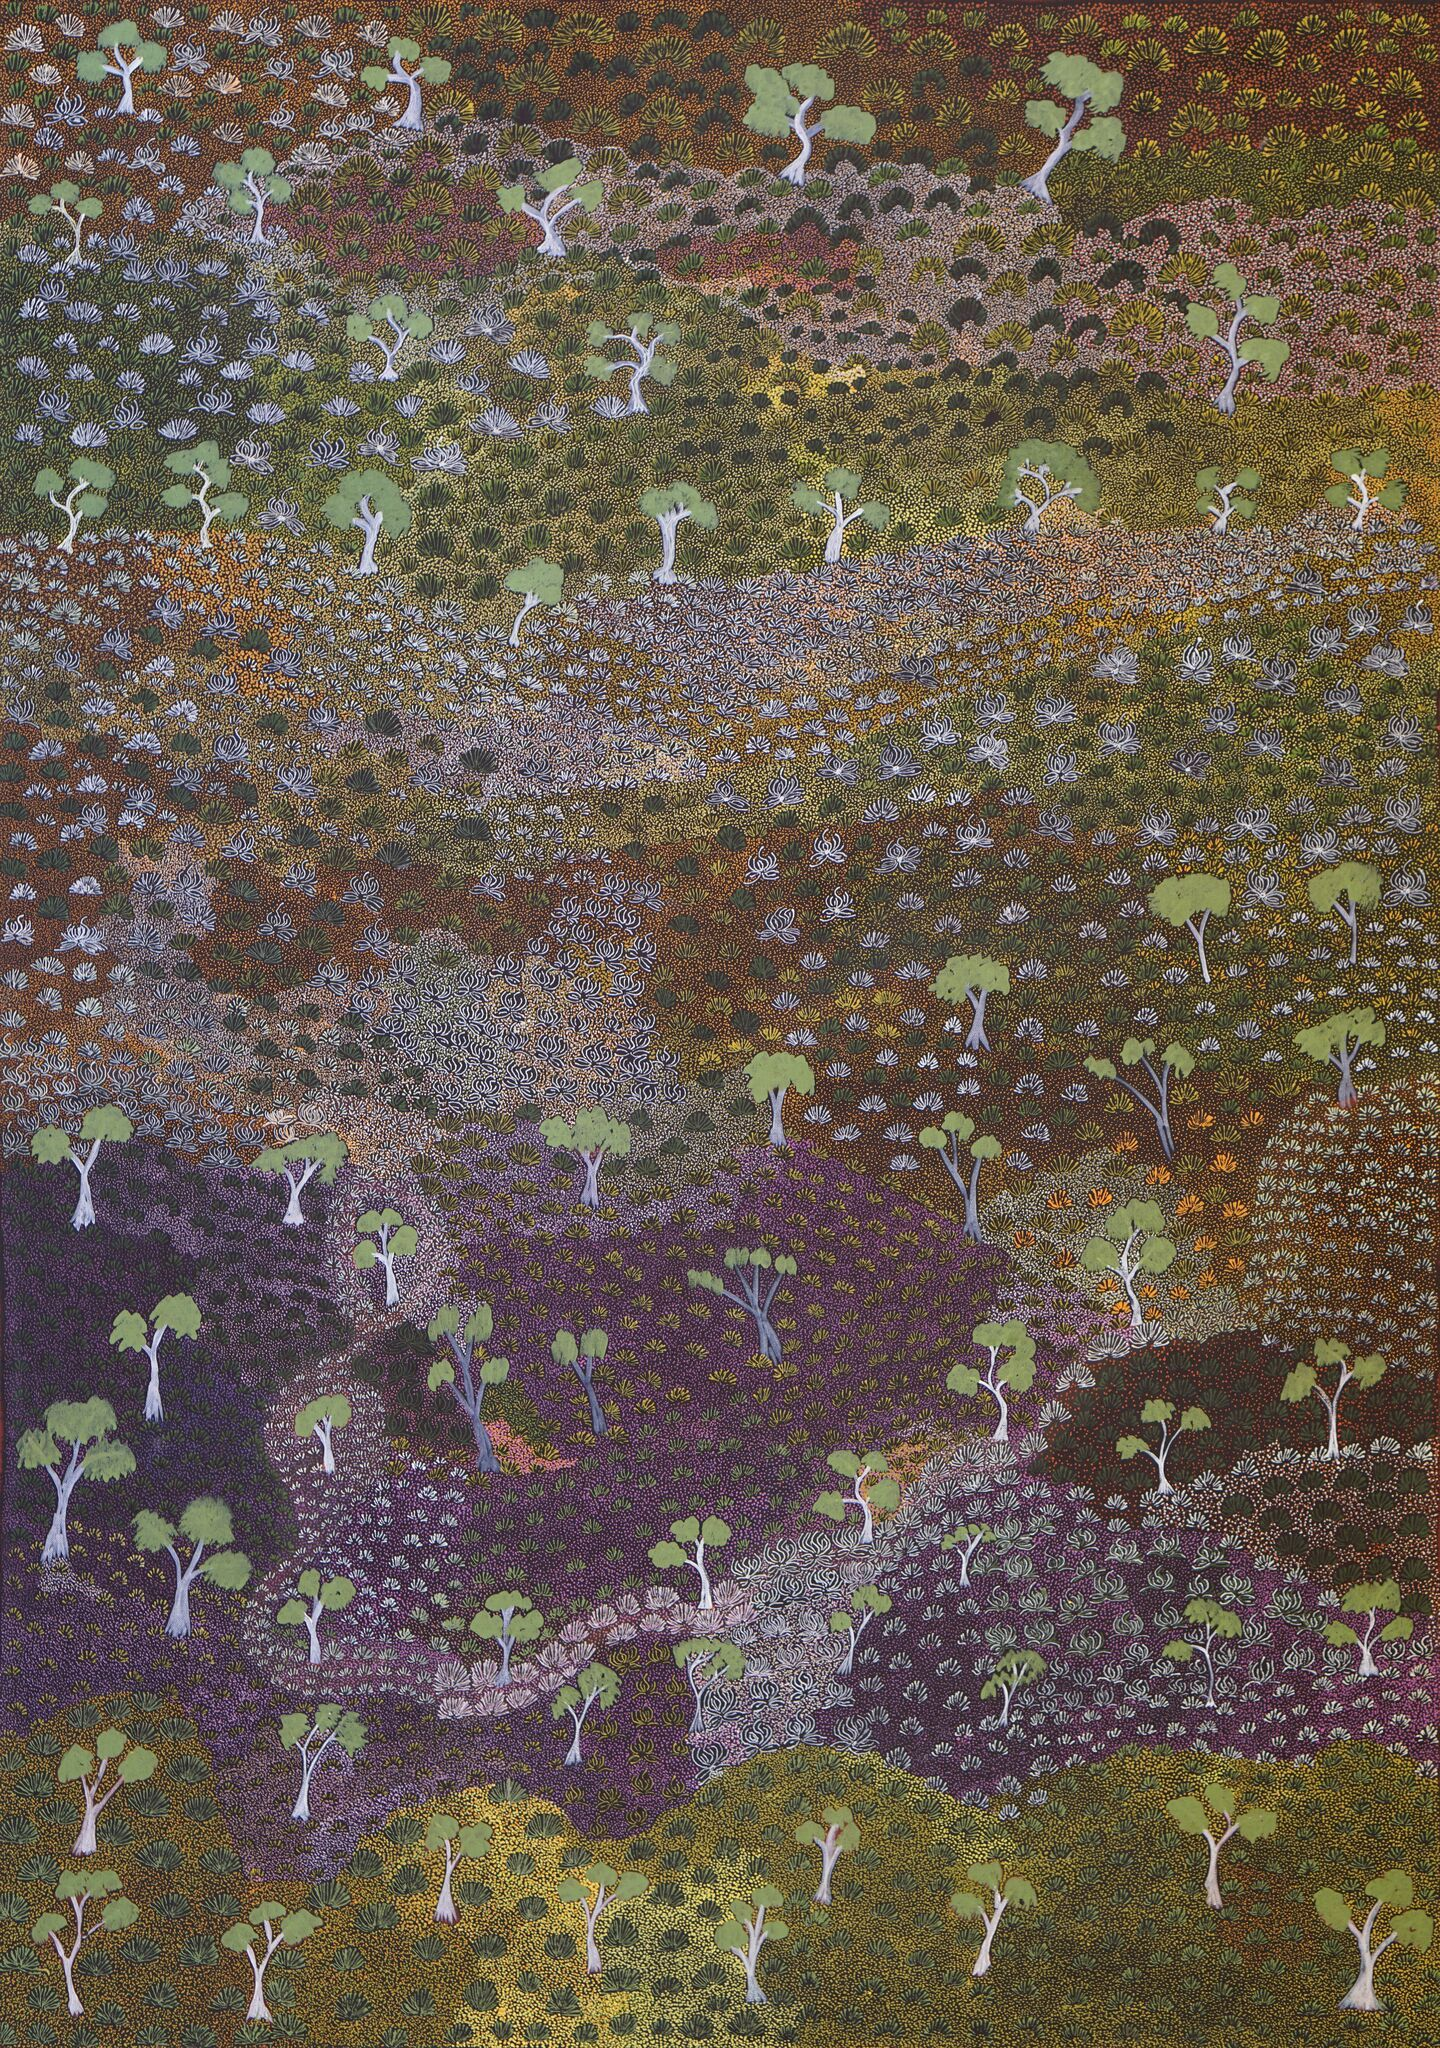 Painting titled Title of Piece done by Colleen depecting her Grandfathers country and the bush medicines and plants that grow there